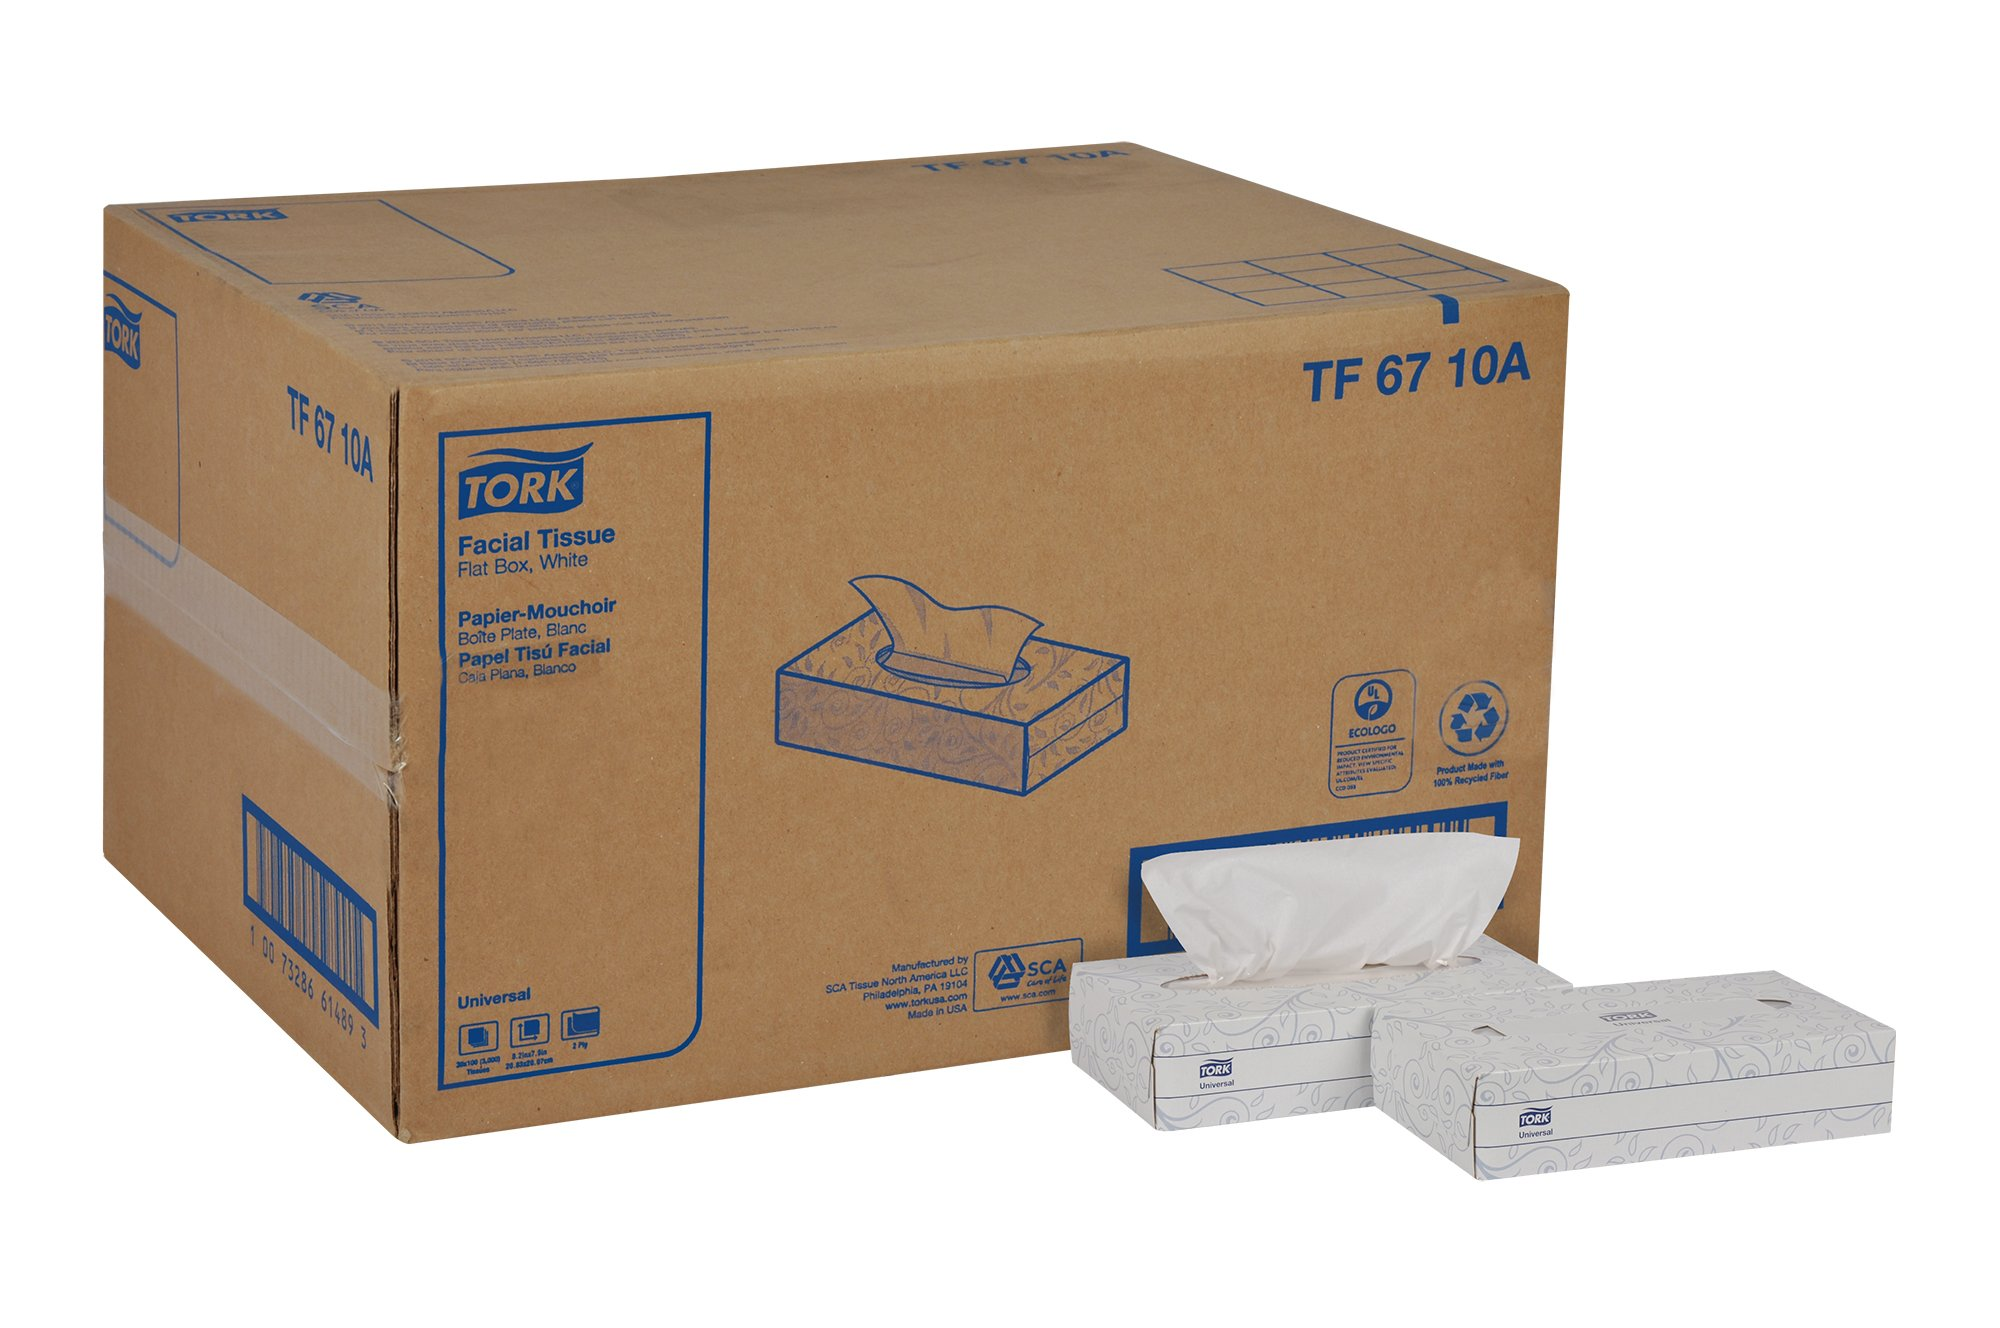 Tork Universal TF6710A Facial Tissue, Flat Box, 2-Ply, 8.2'' Width x 7.9'' Length, White (Case of 30 Boxes, of 100 per Box, 3,000 Sheets)